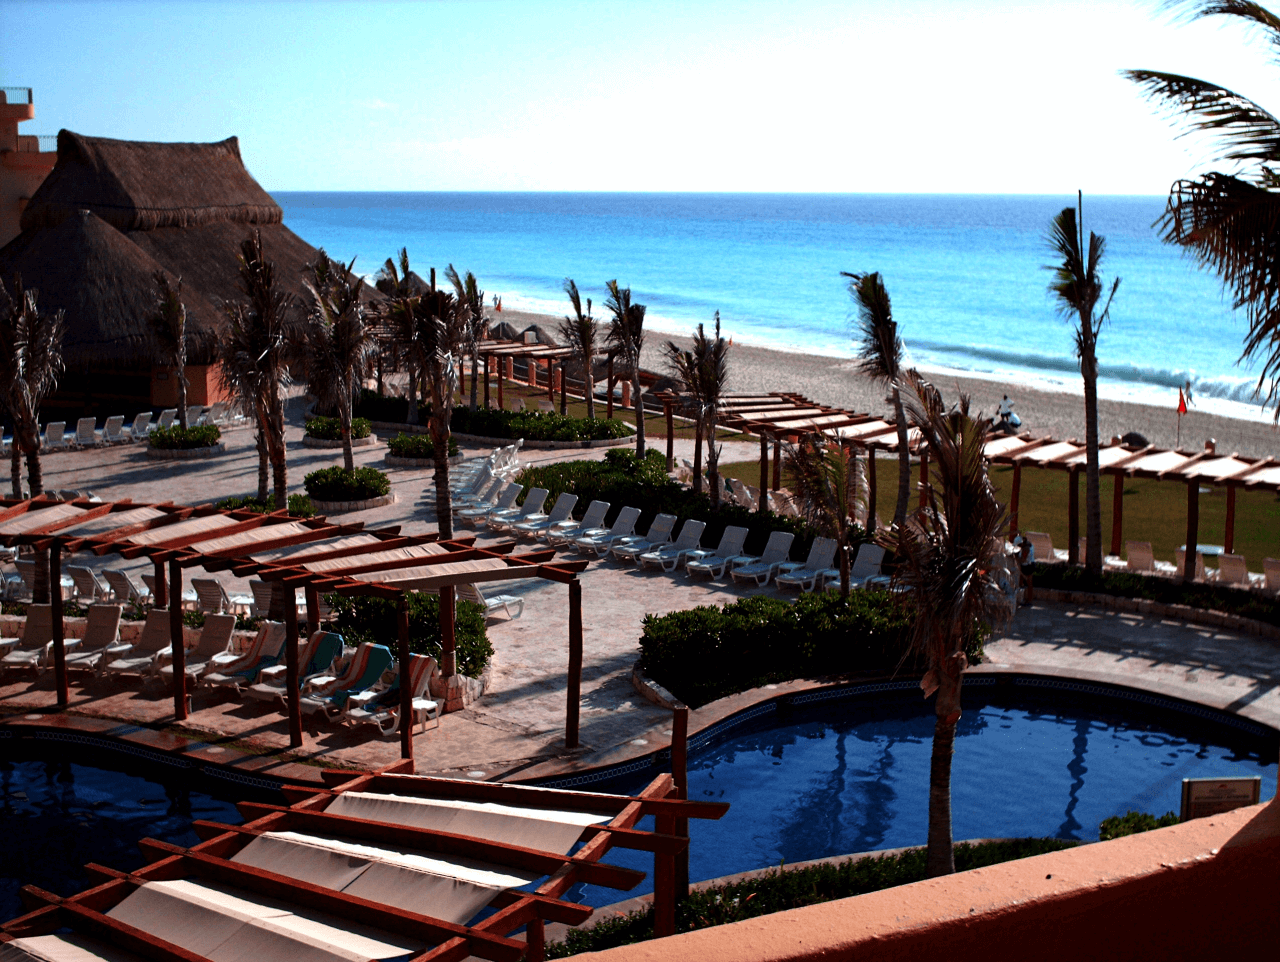 Cancún: Luxury Hotels in Cancún: Luxury Hotel Reviews: 10Best